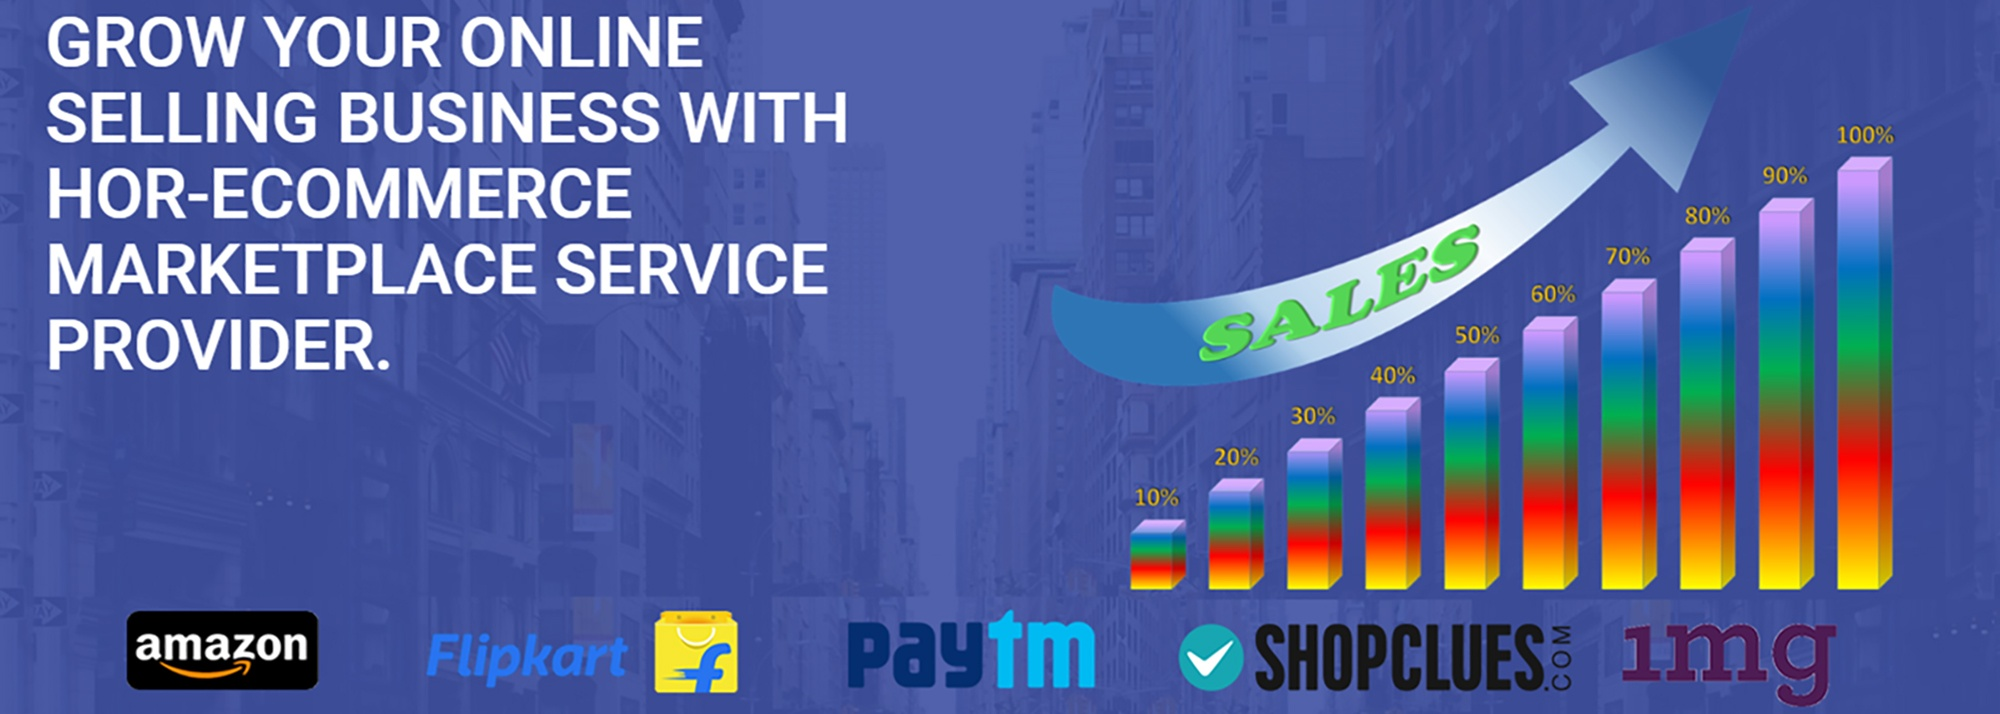 ecommerce marketplaces service provider